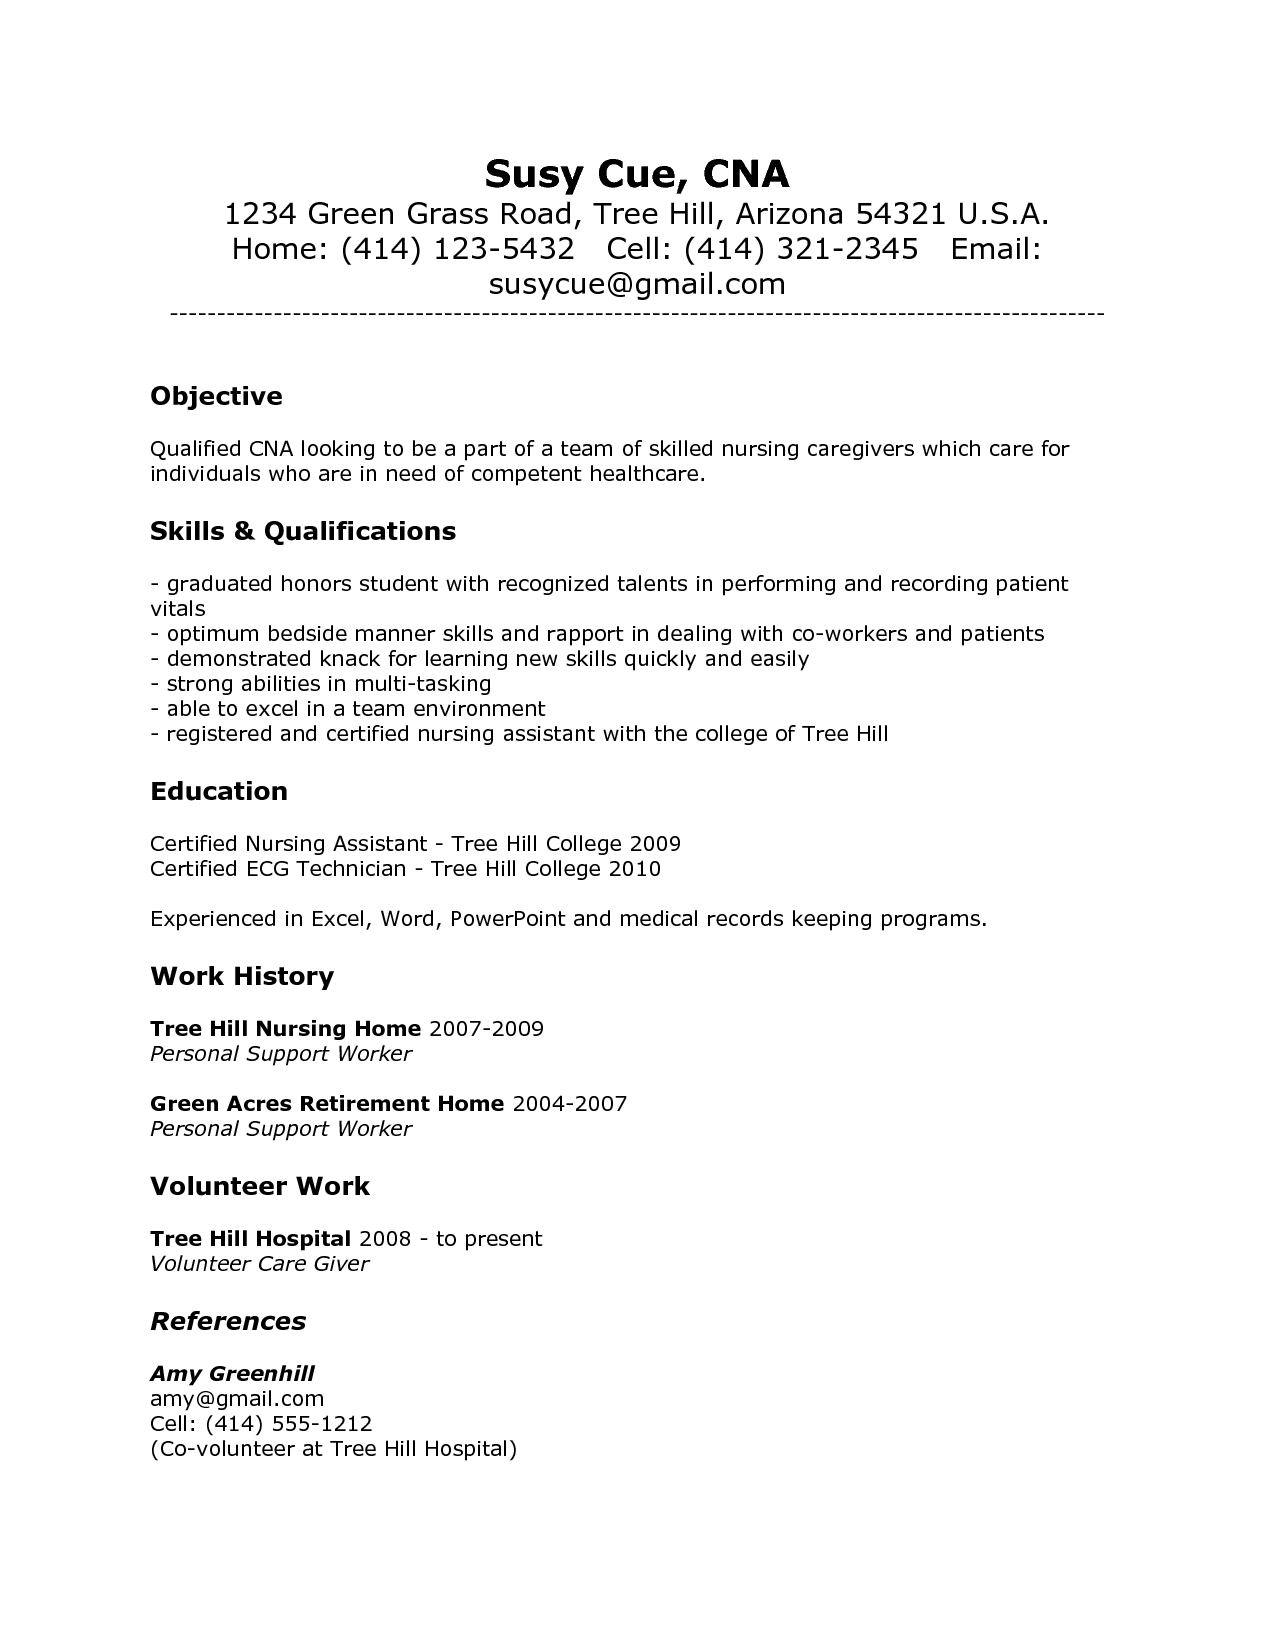 Certified Nursing Assistant Resume Examples Classy Resume Samplecna Job Duties Resume Resume Sample Geriatric .